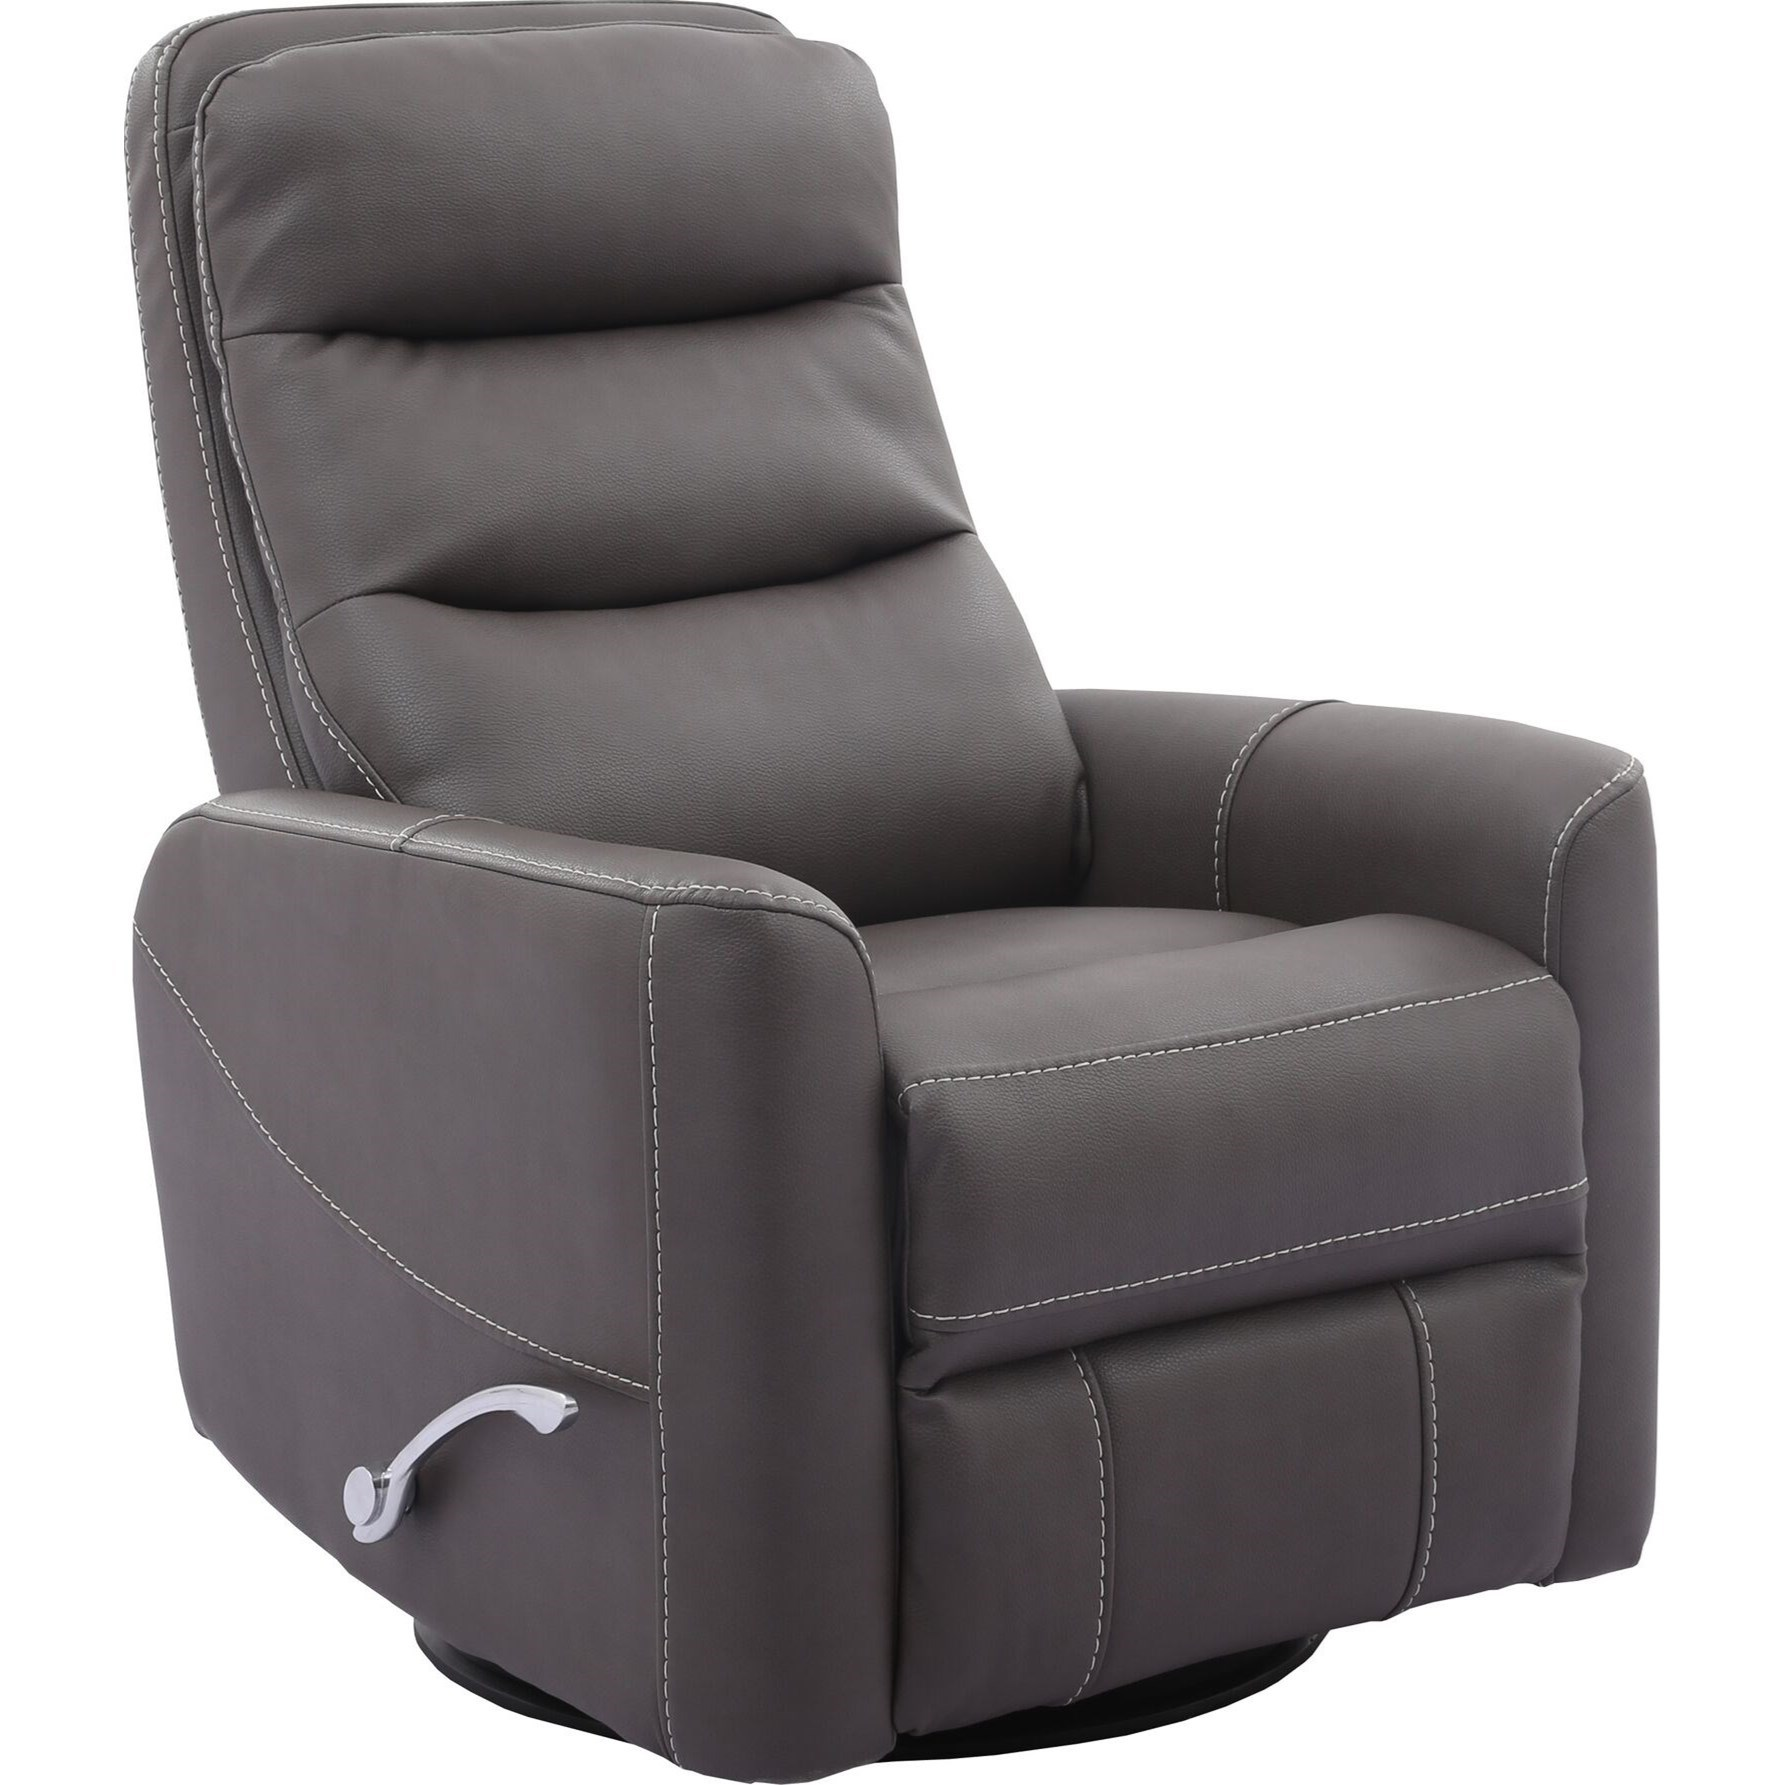 Hercules Swivel Glider Recliner by Parker Living at Wilcox Furniture